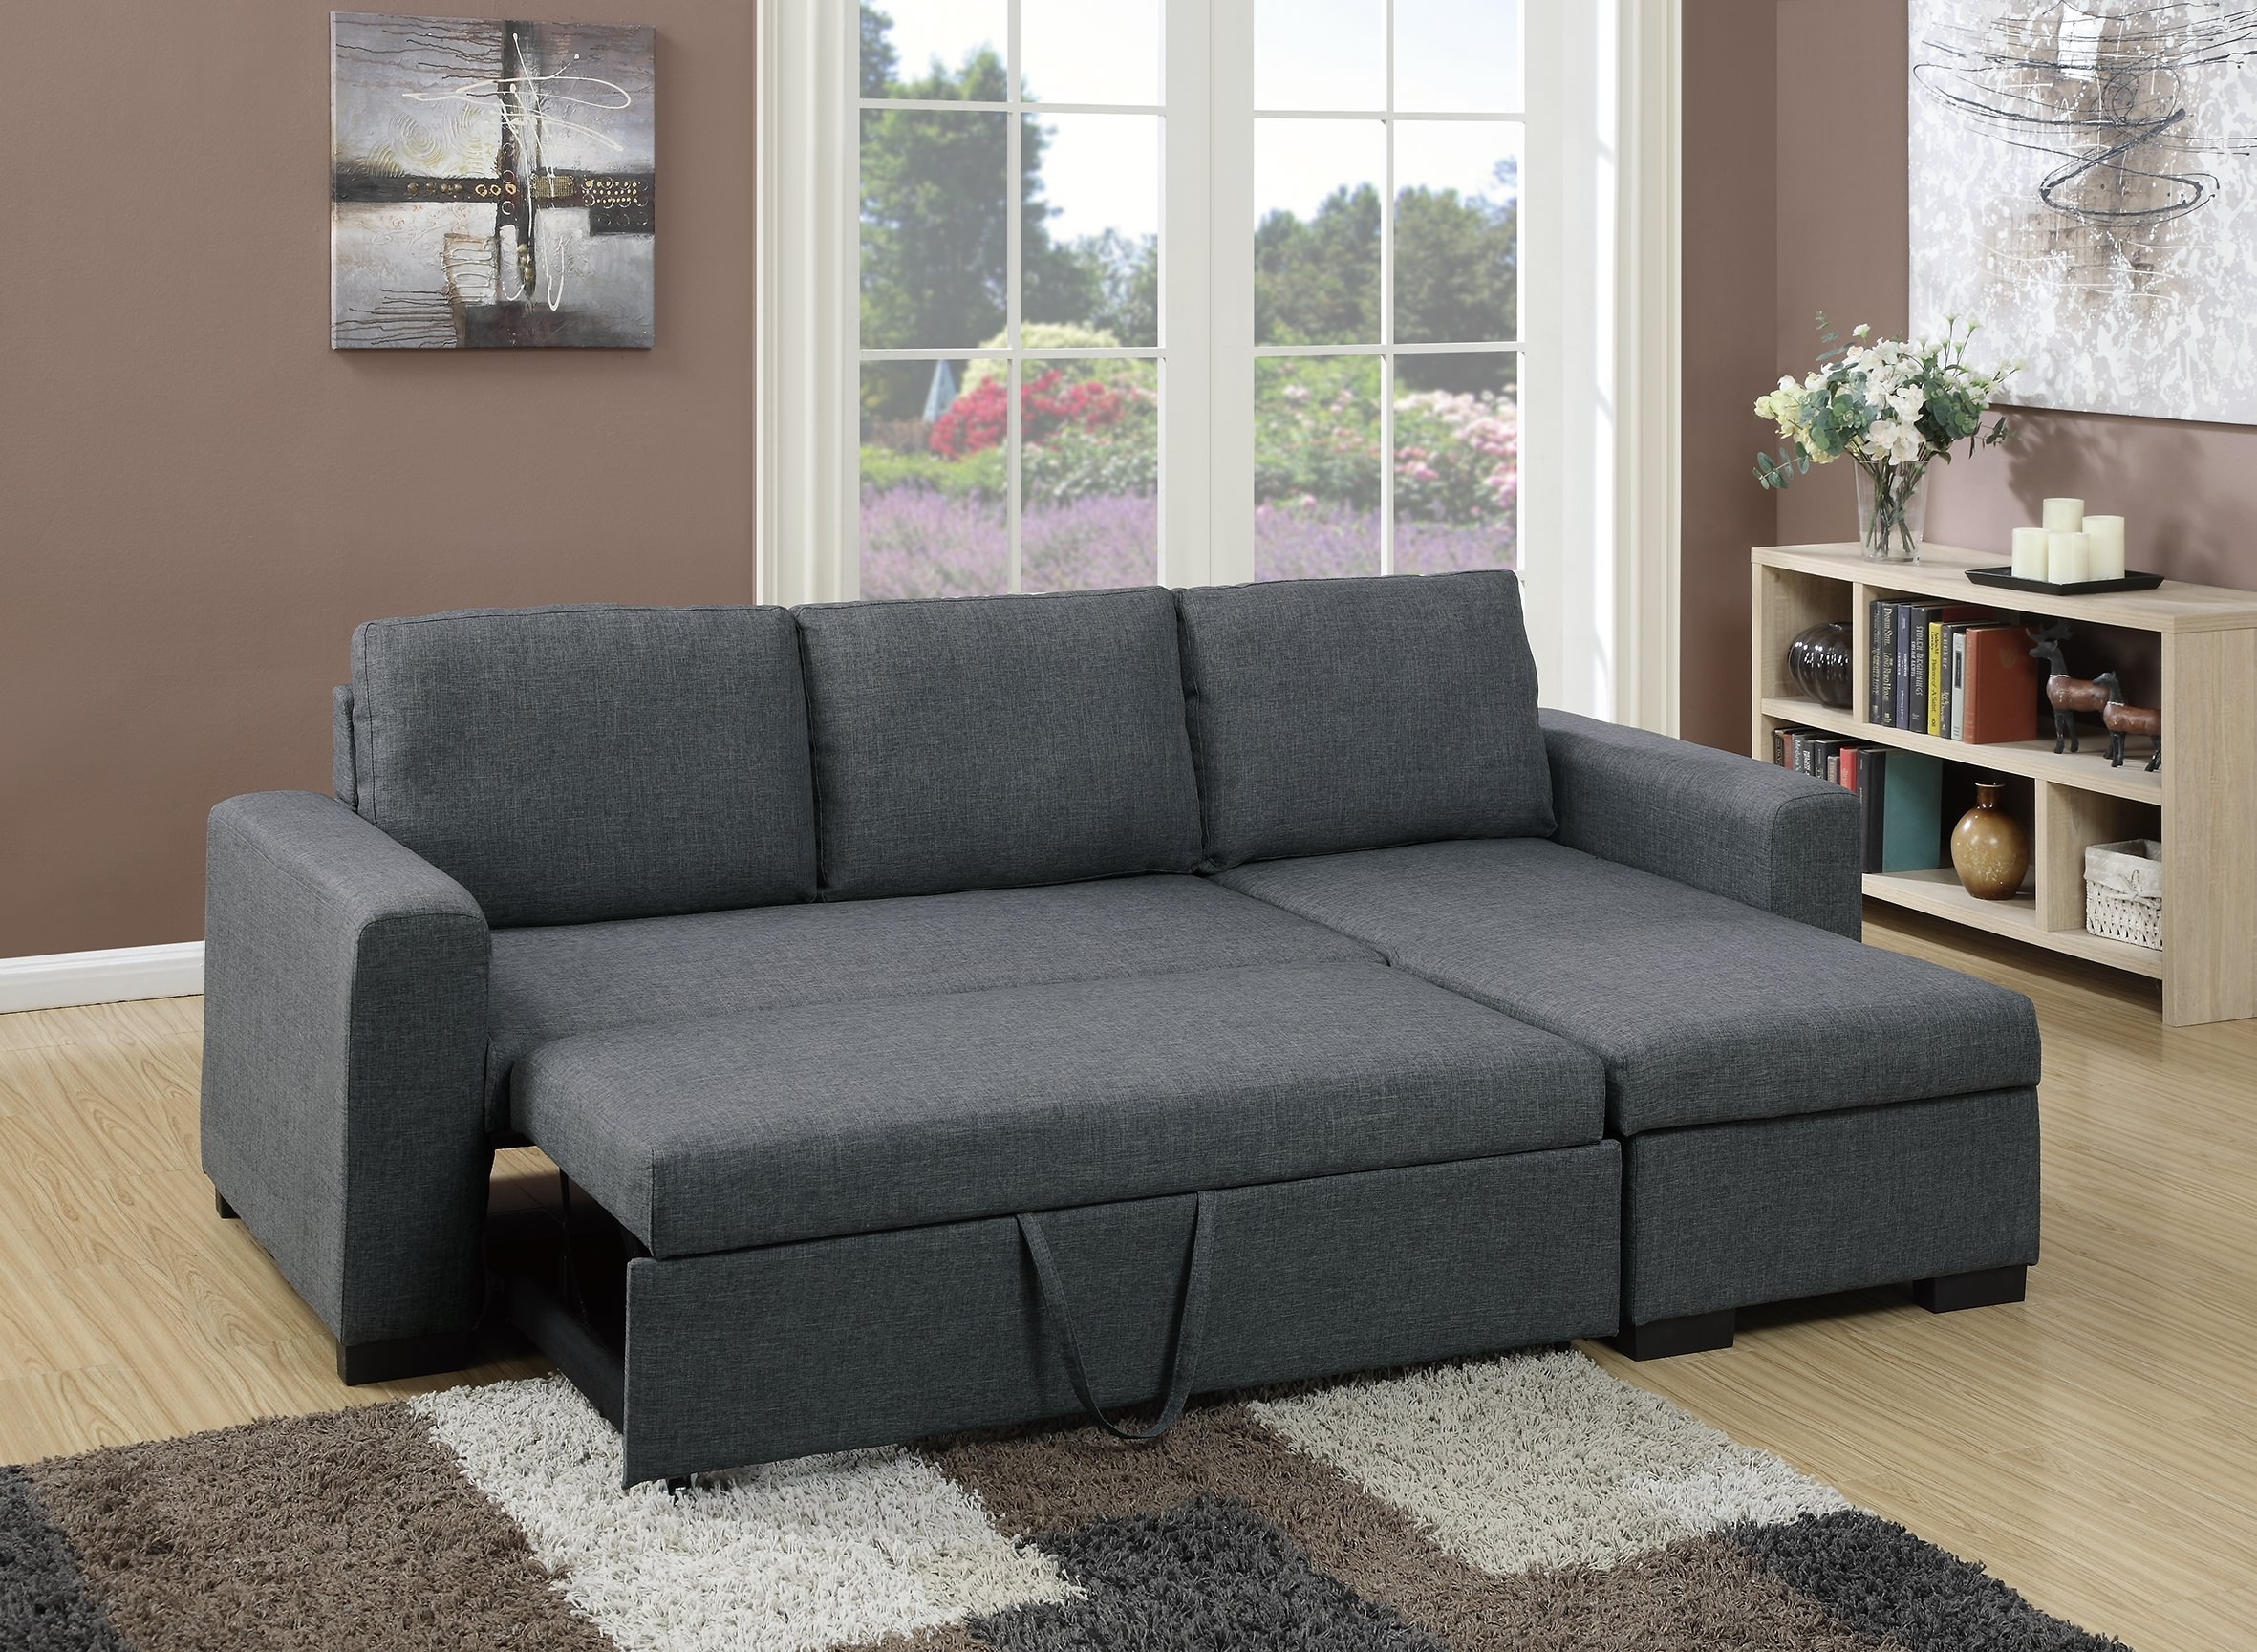 F6931 Blue Gray Convertible Sectional Sofa Poundex Regarding Convertible Sectional Sofas (Image 7 of 15)